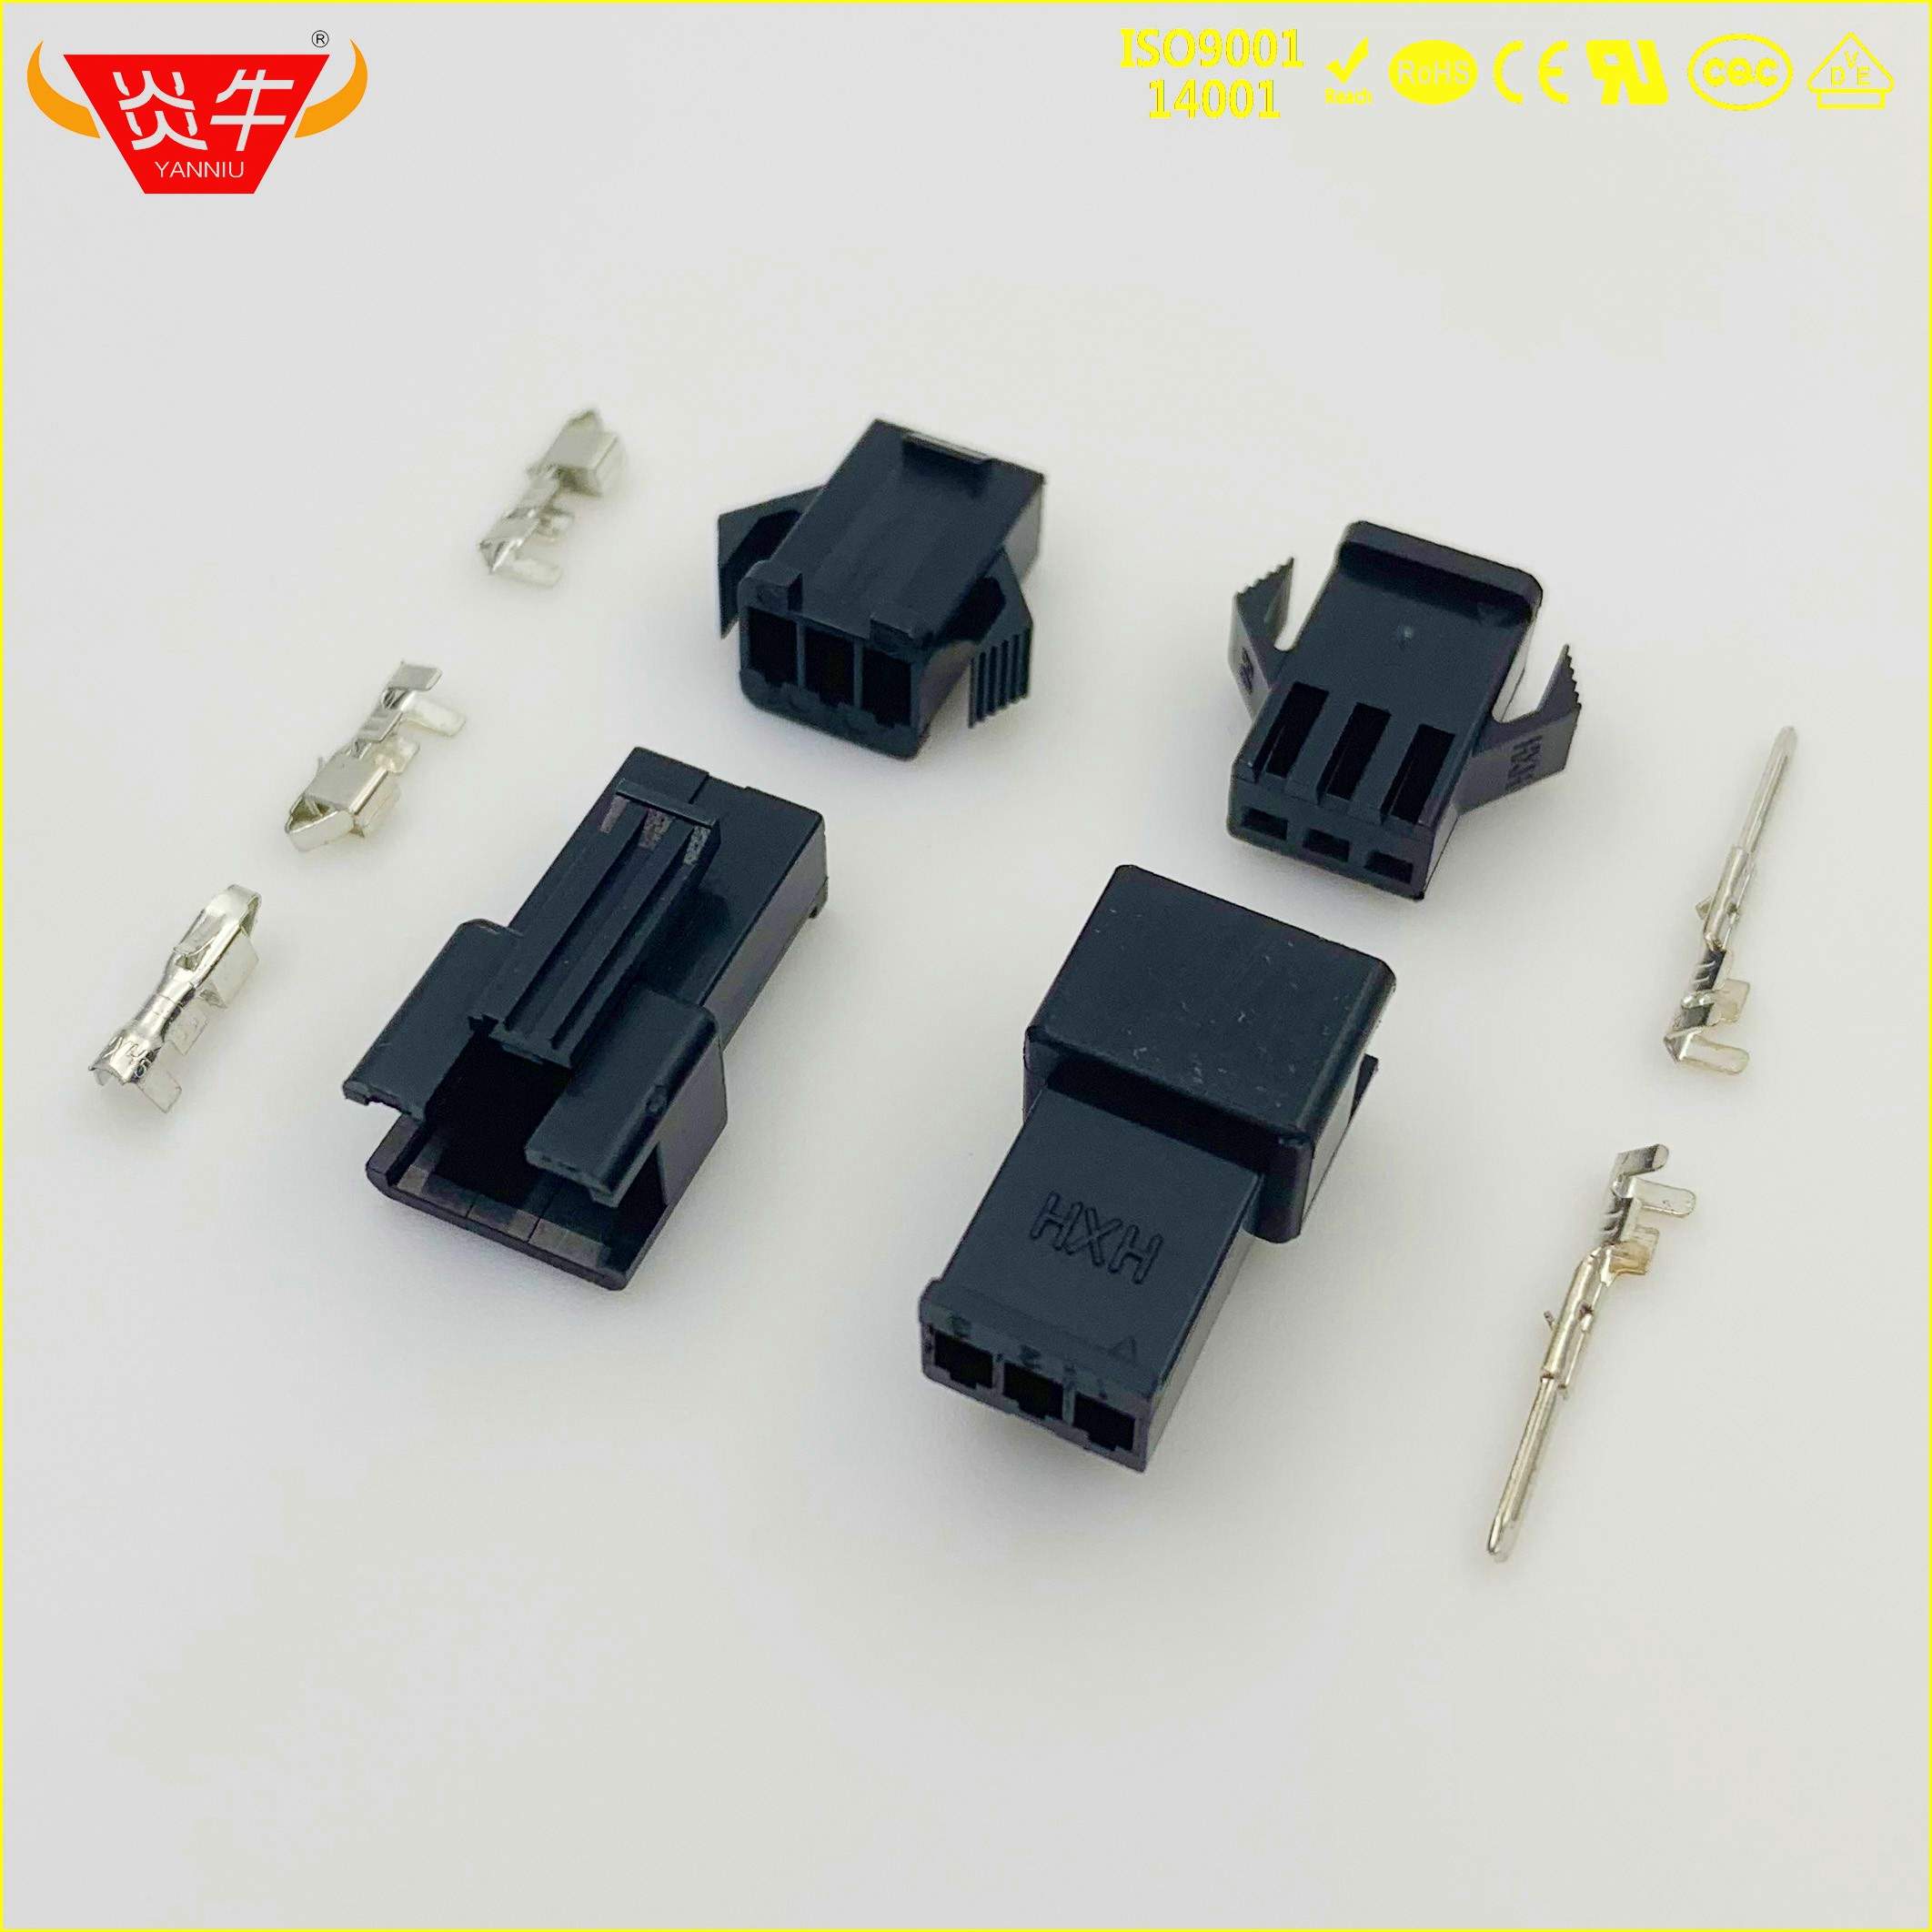 SM 2.5 WHITE STRIP CONNECTOR 2.5mm HOUSING WAFER TERMINAL HX25022 PT  HX25022 P HX25023 RT HX25023 R MOLEX JST|Connectors| - AliExpress